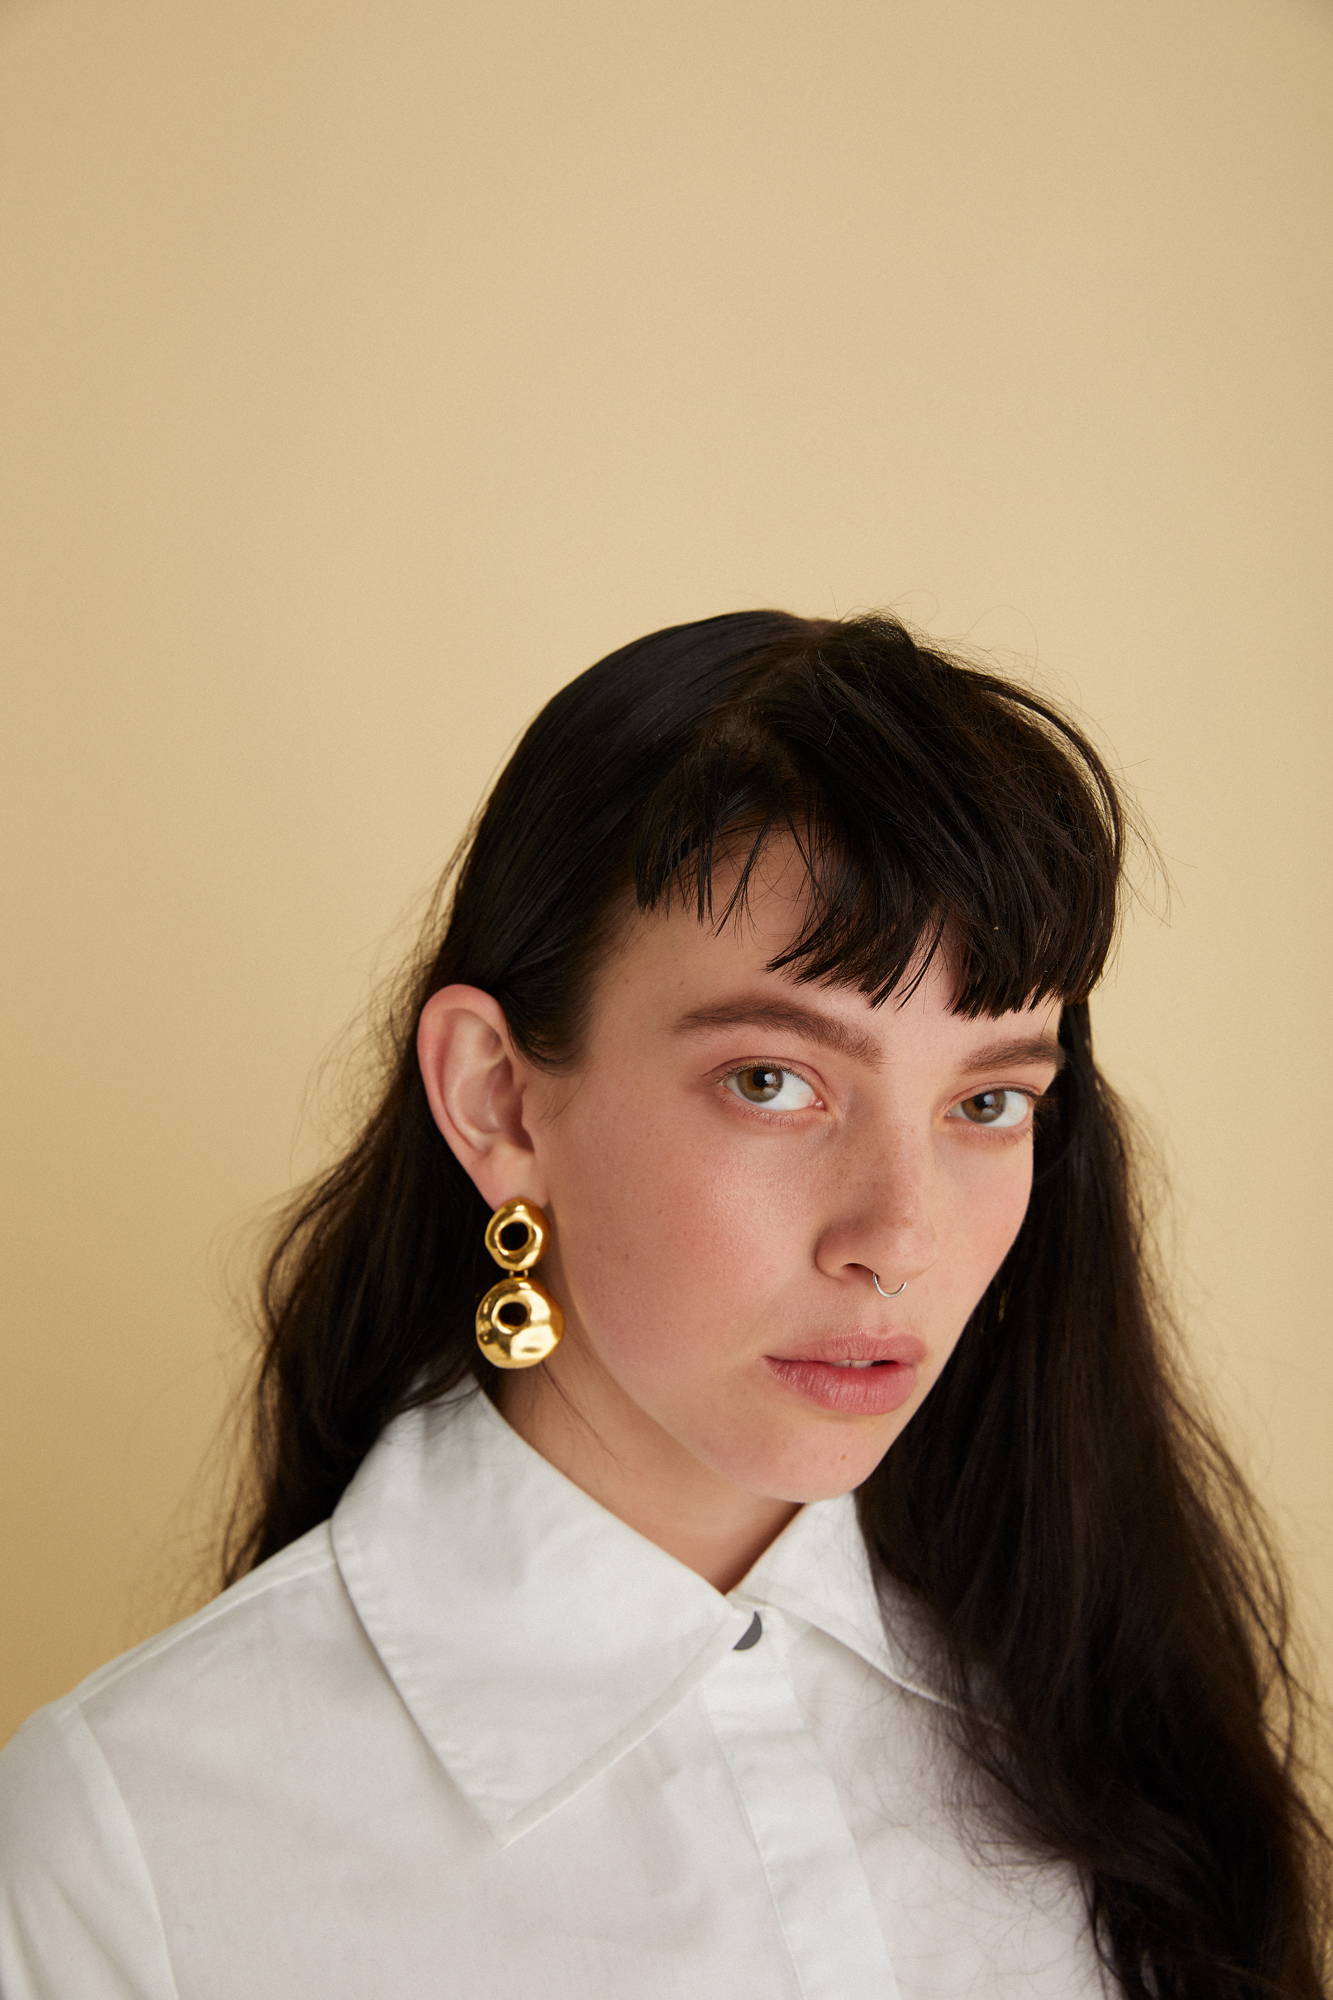 Earrings |  The Line of Sun , Shirt |  Arnsdorf